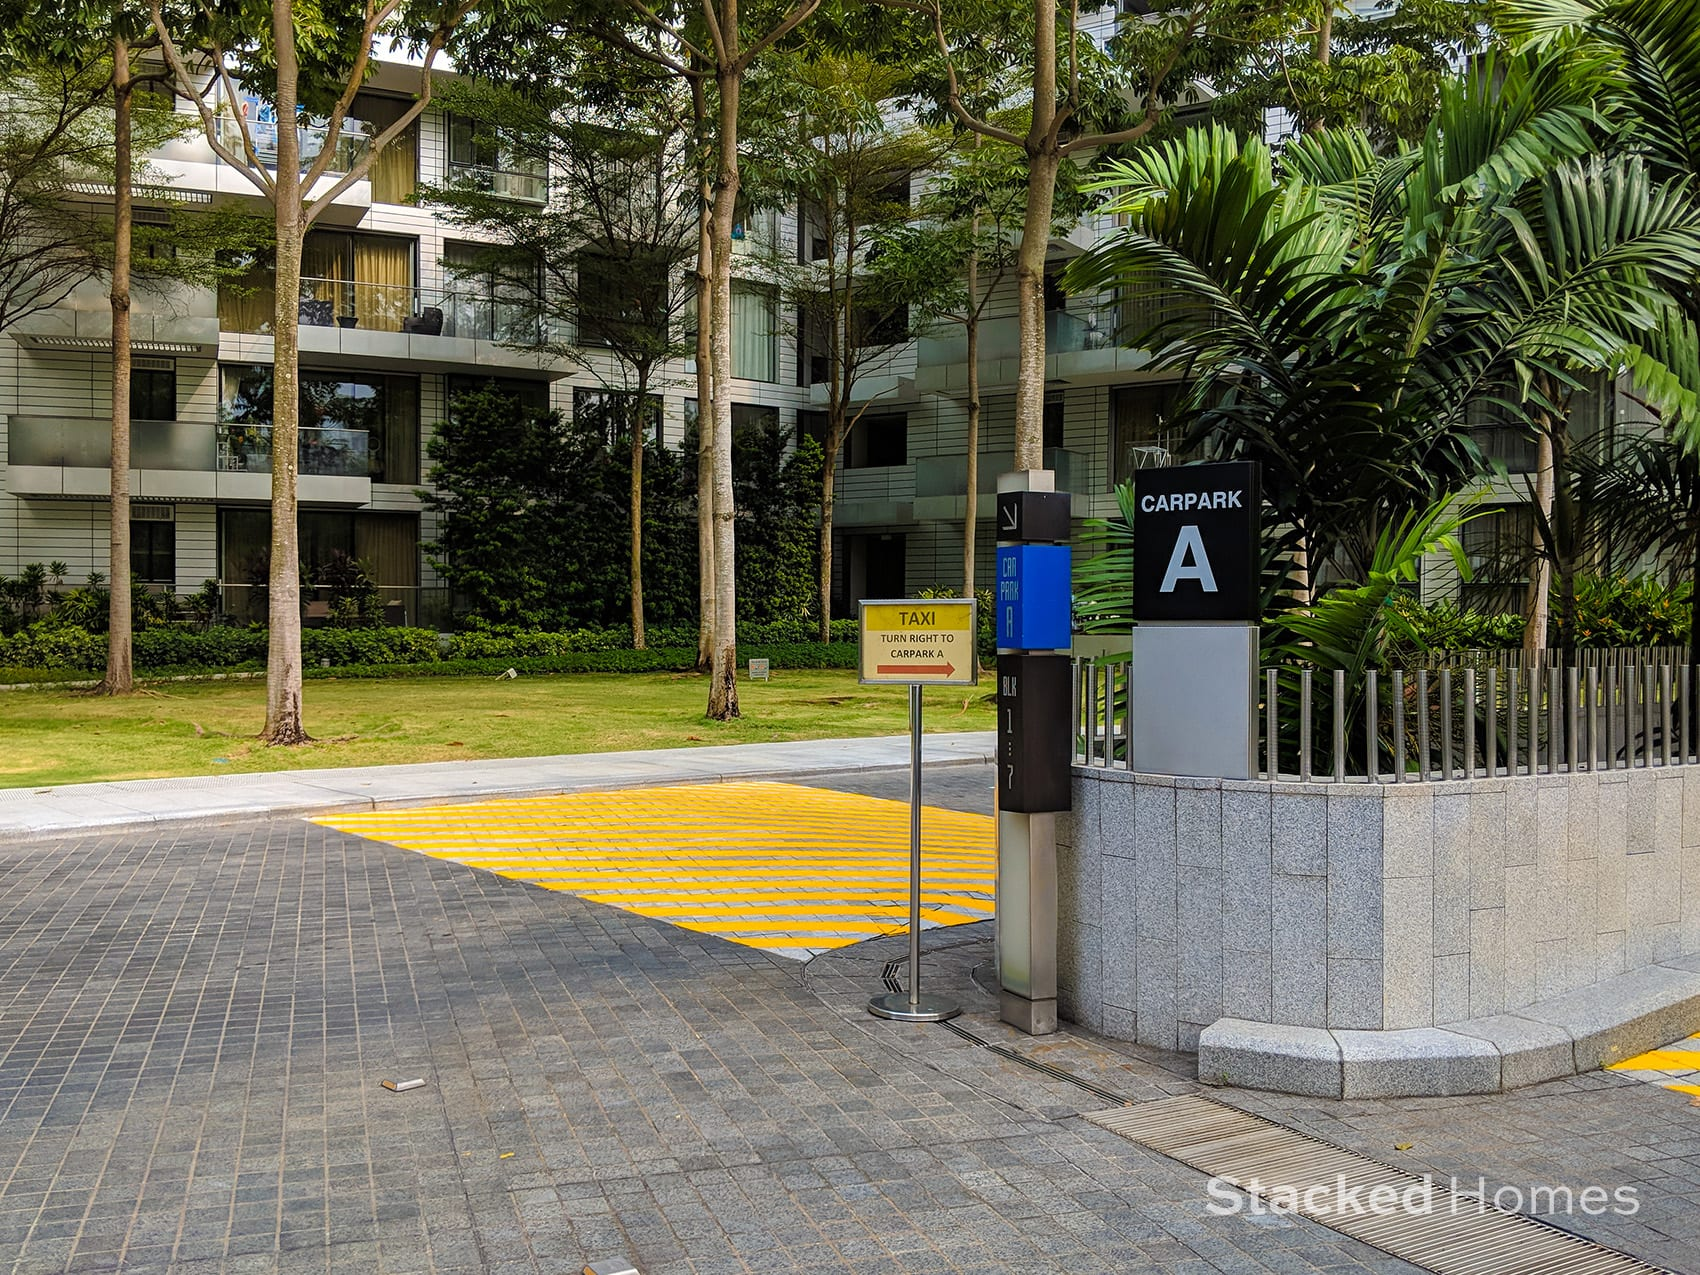 reflections at keppel bay carpark entrance